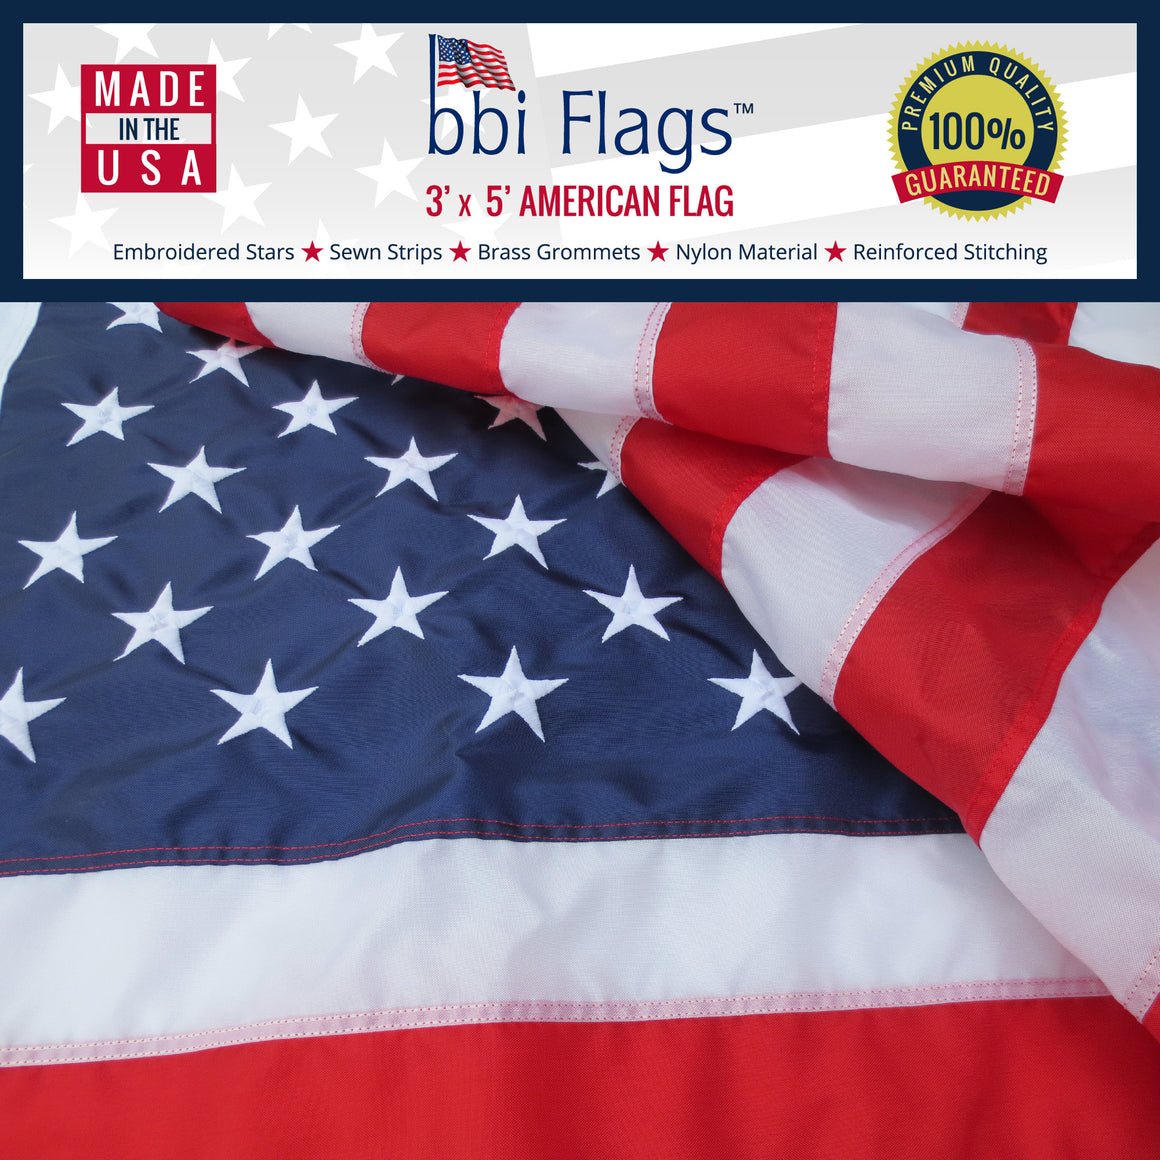 American Flag, 100% Made In USA, Nylon US Flags, Embroidered and Sewn - 3'x5' - bbi Flags